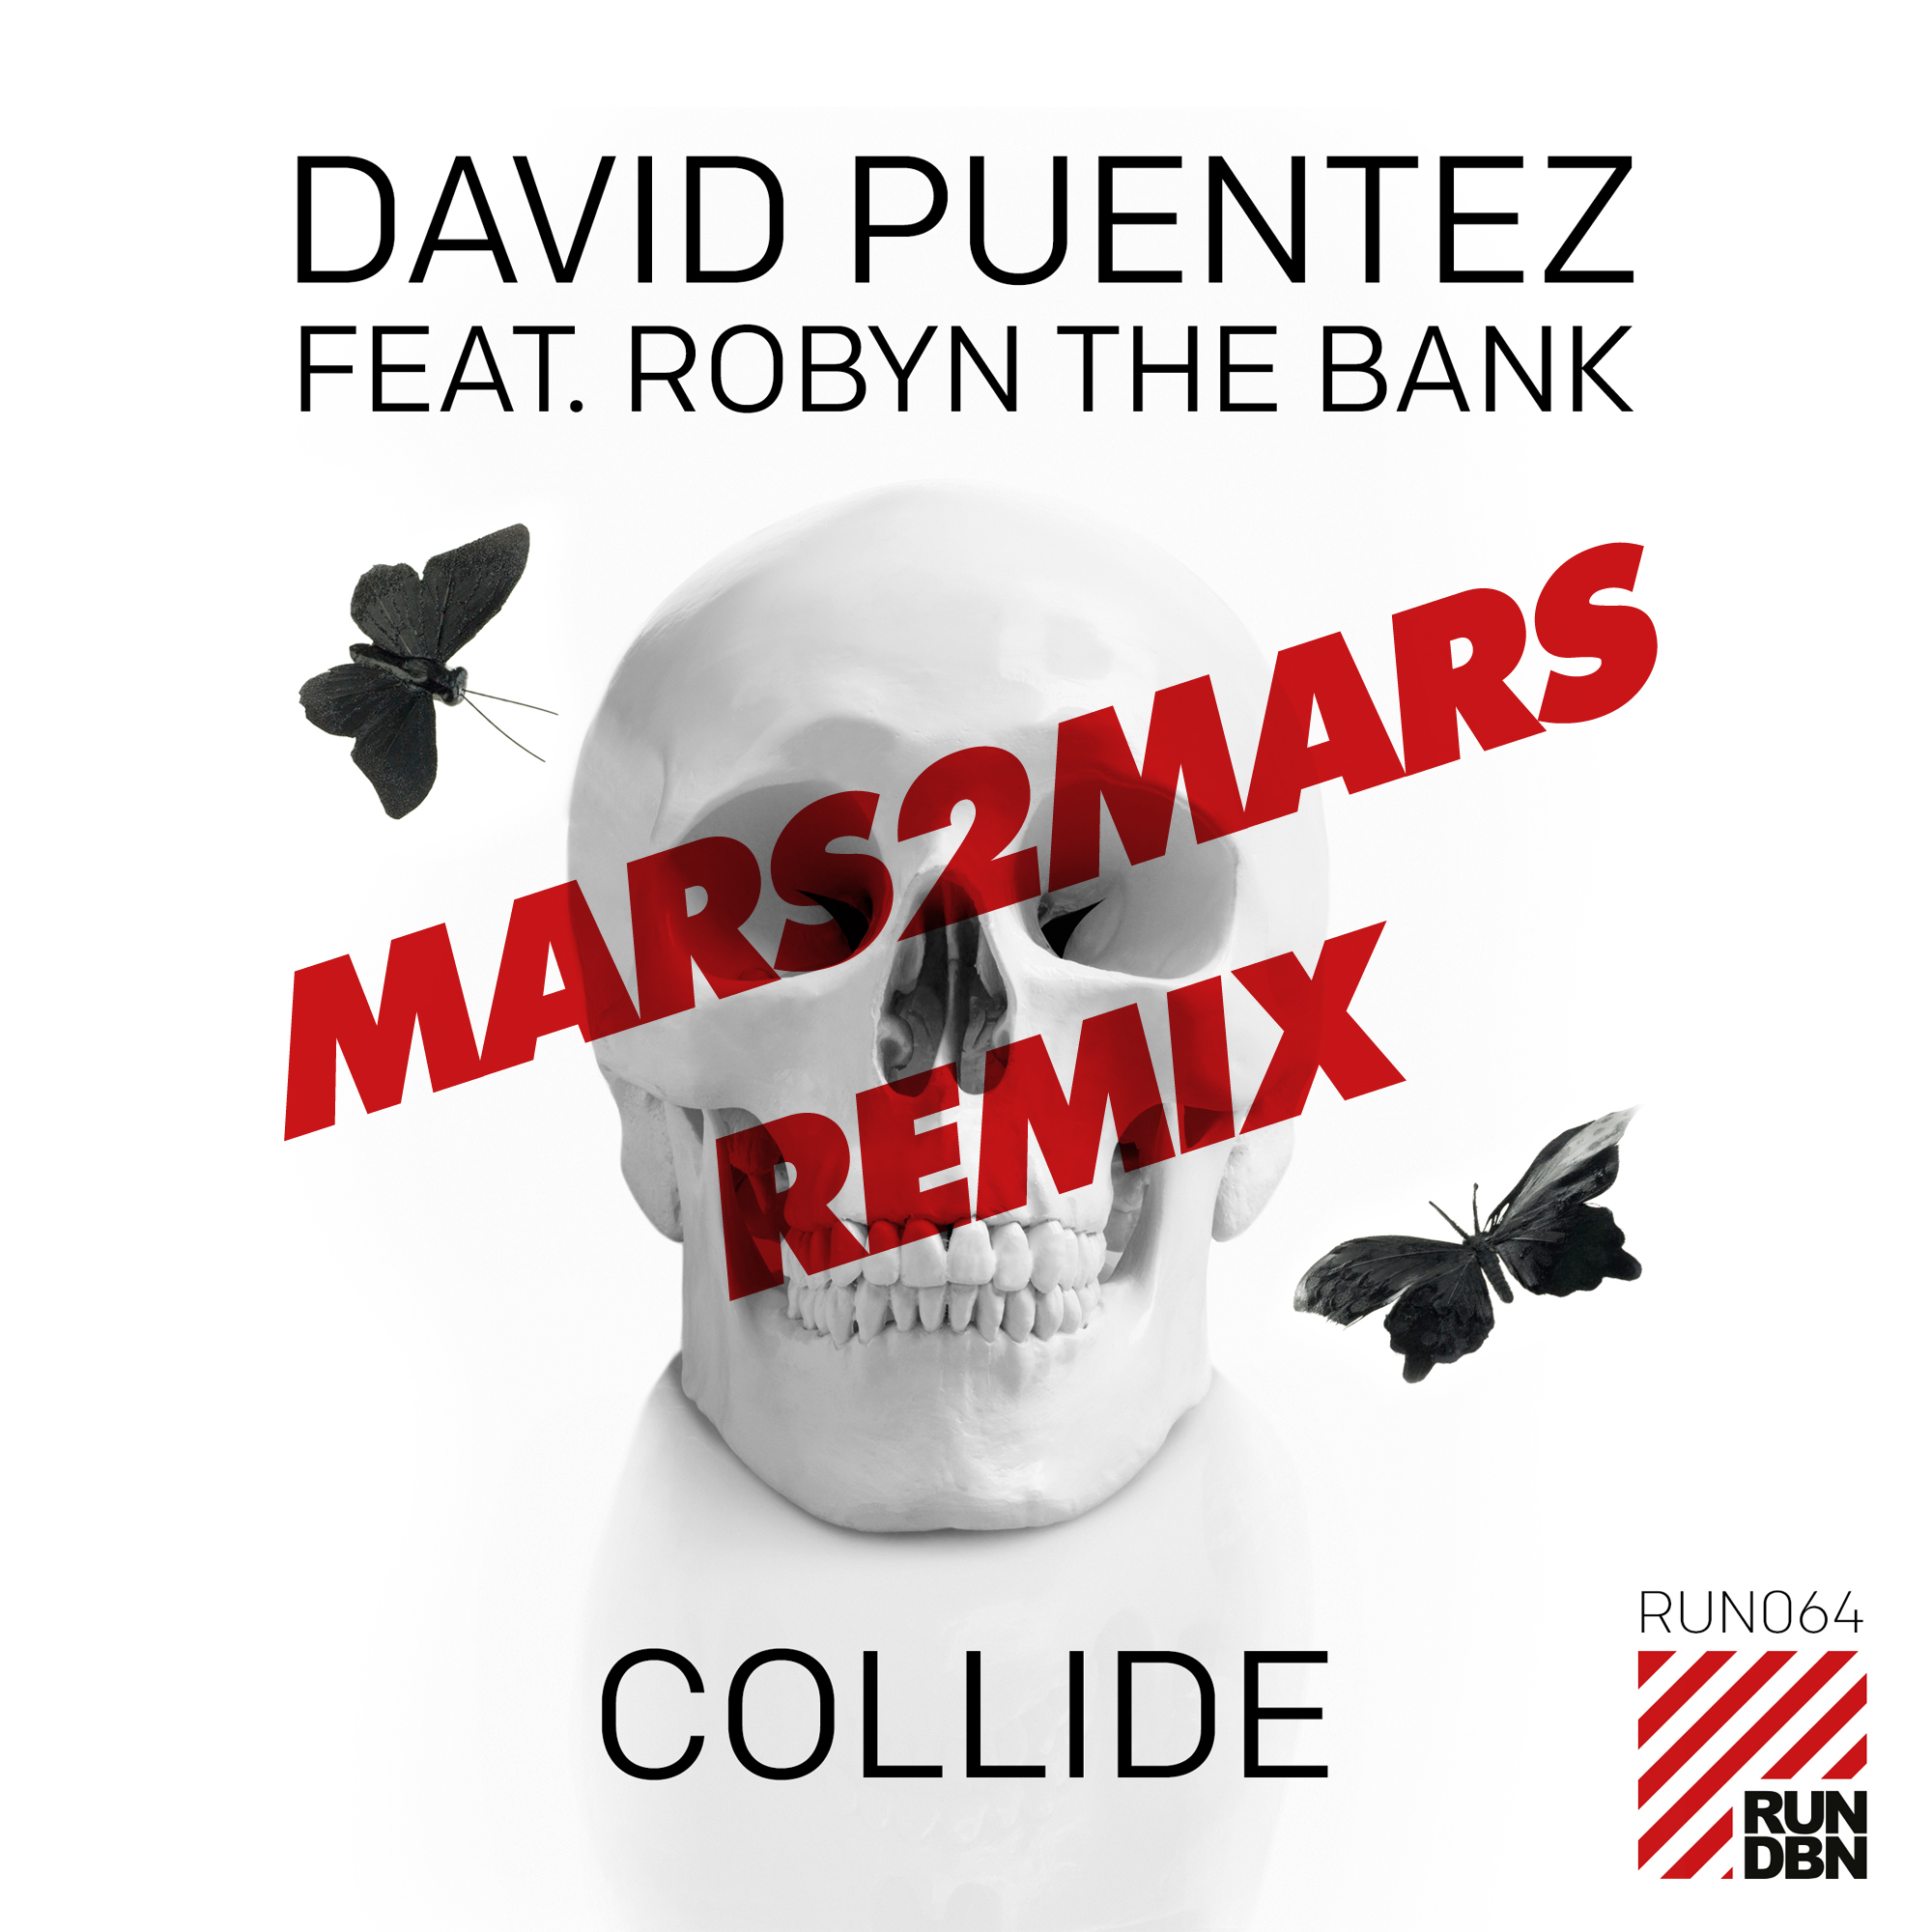 Run DBN Collide David Puentez Mars 2 Mars Remix